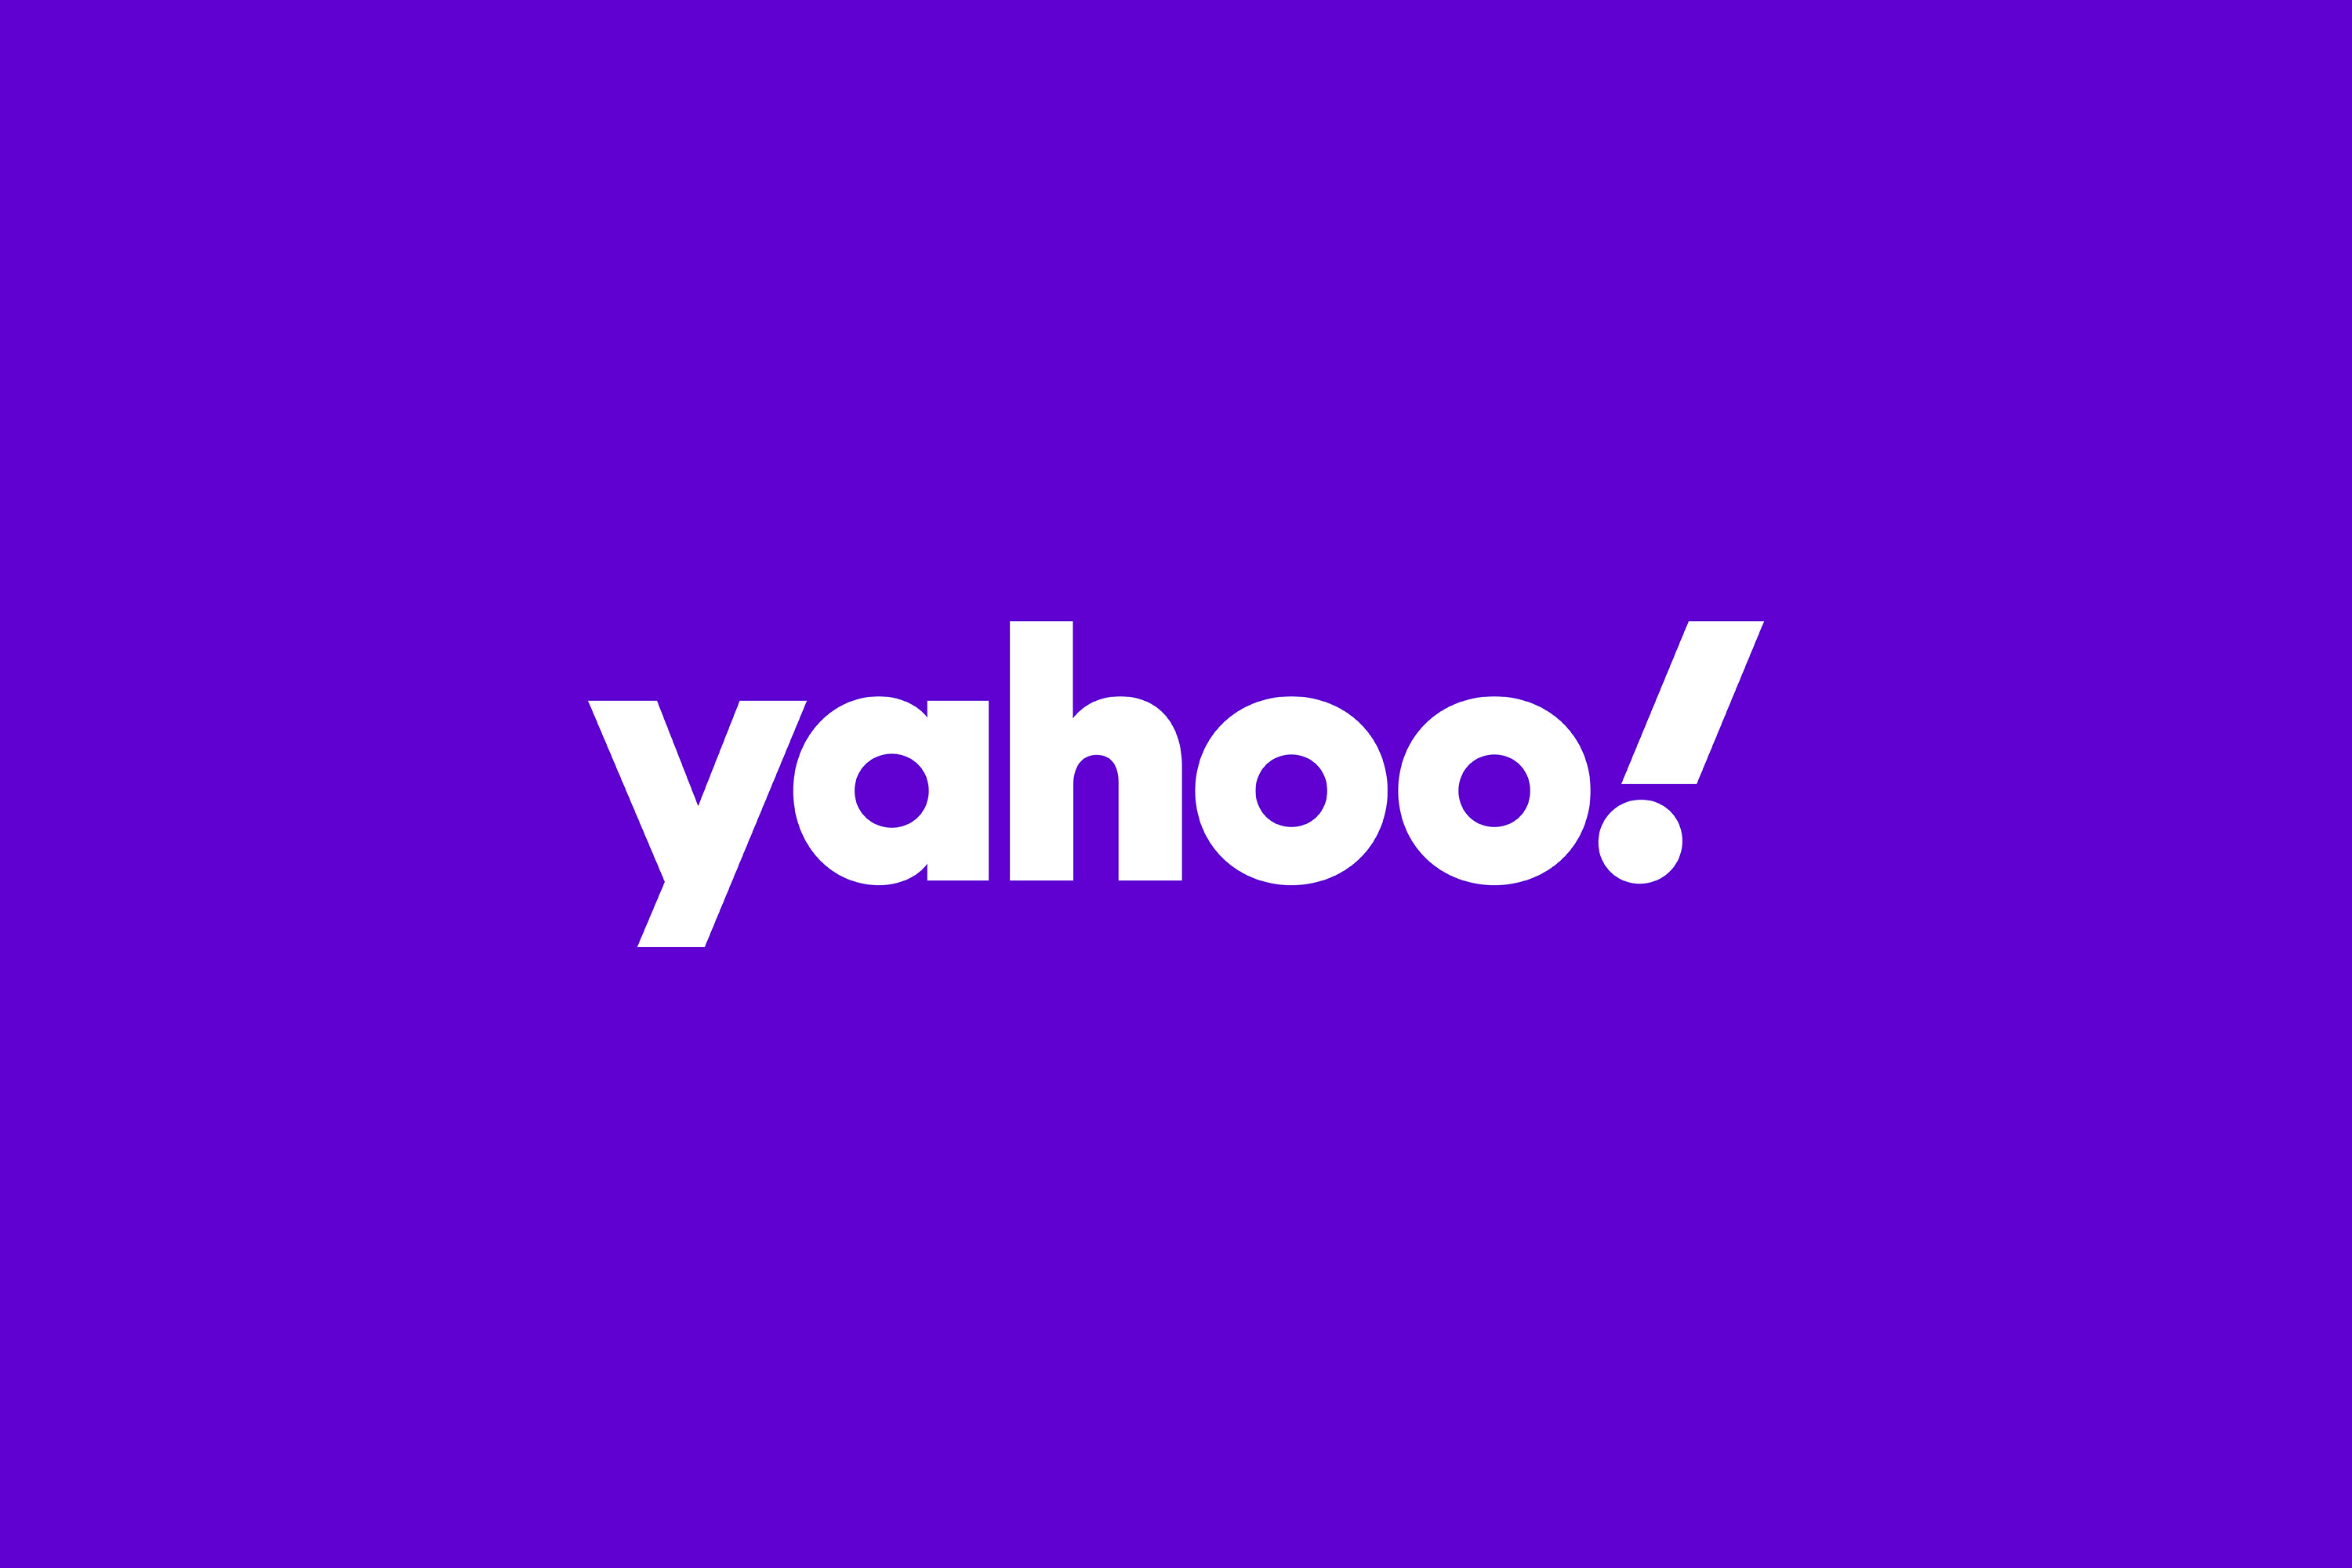 Yahoo! – Brand Refresh by Pentagram